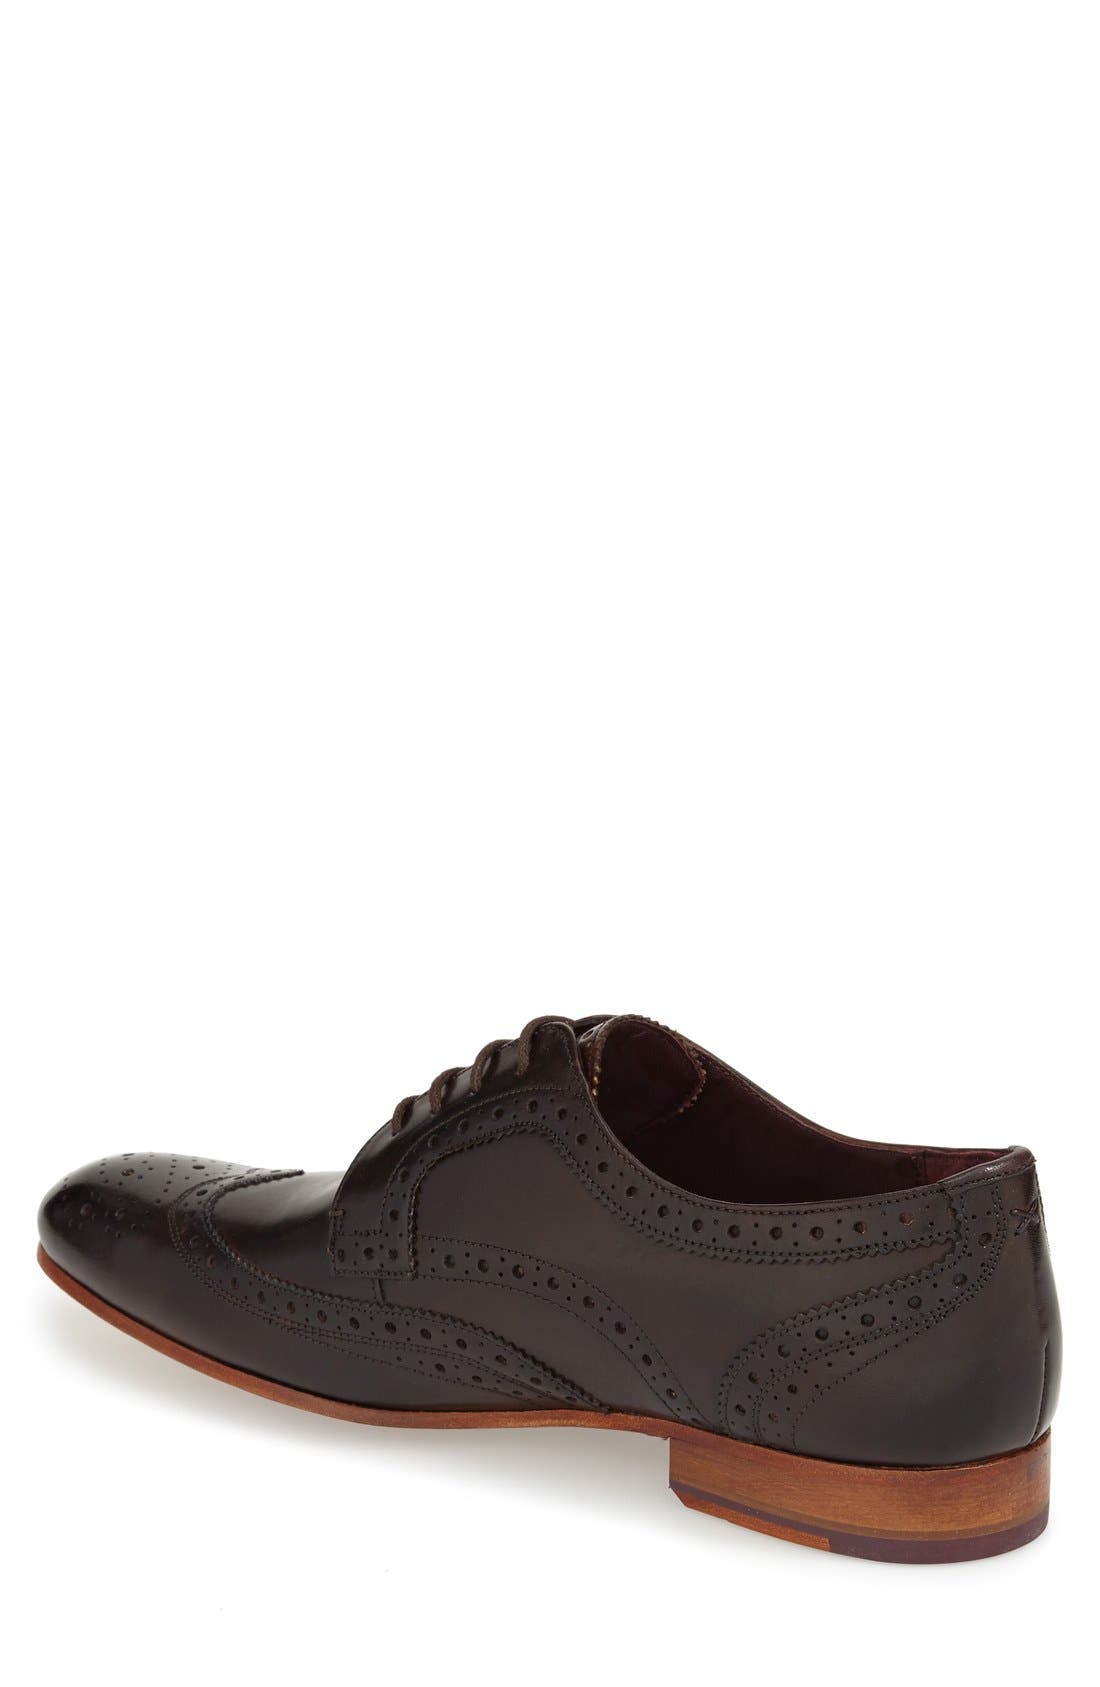 'Gryene' Wingtip Oxford,                             Alternate thumbnail 6, color,